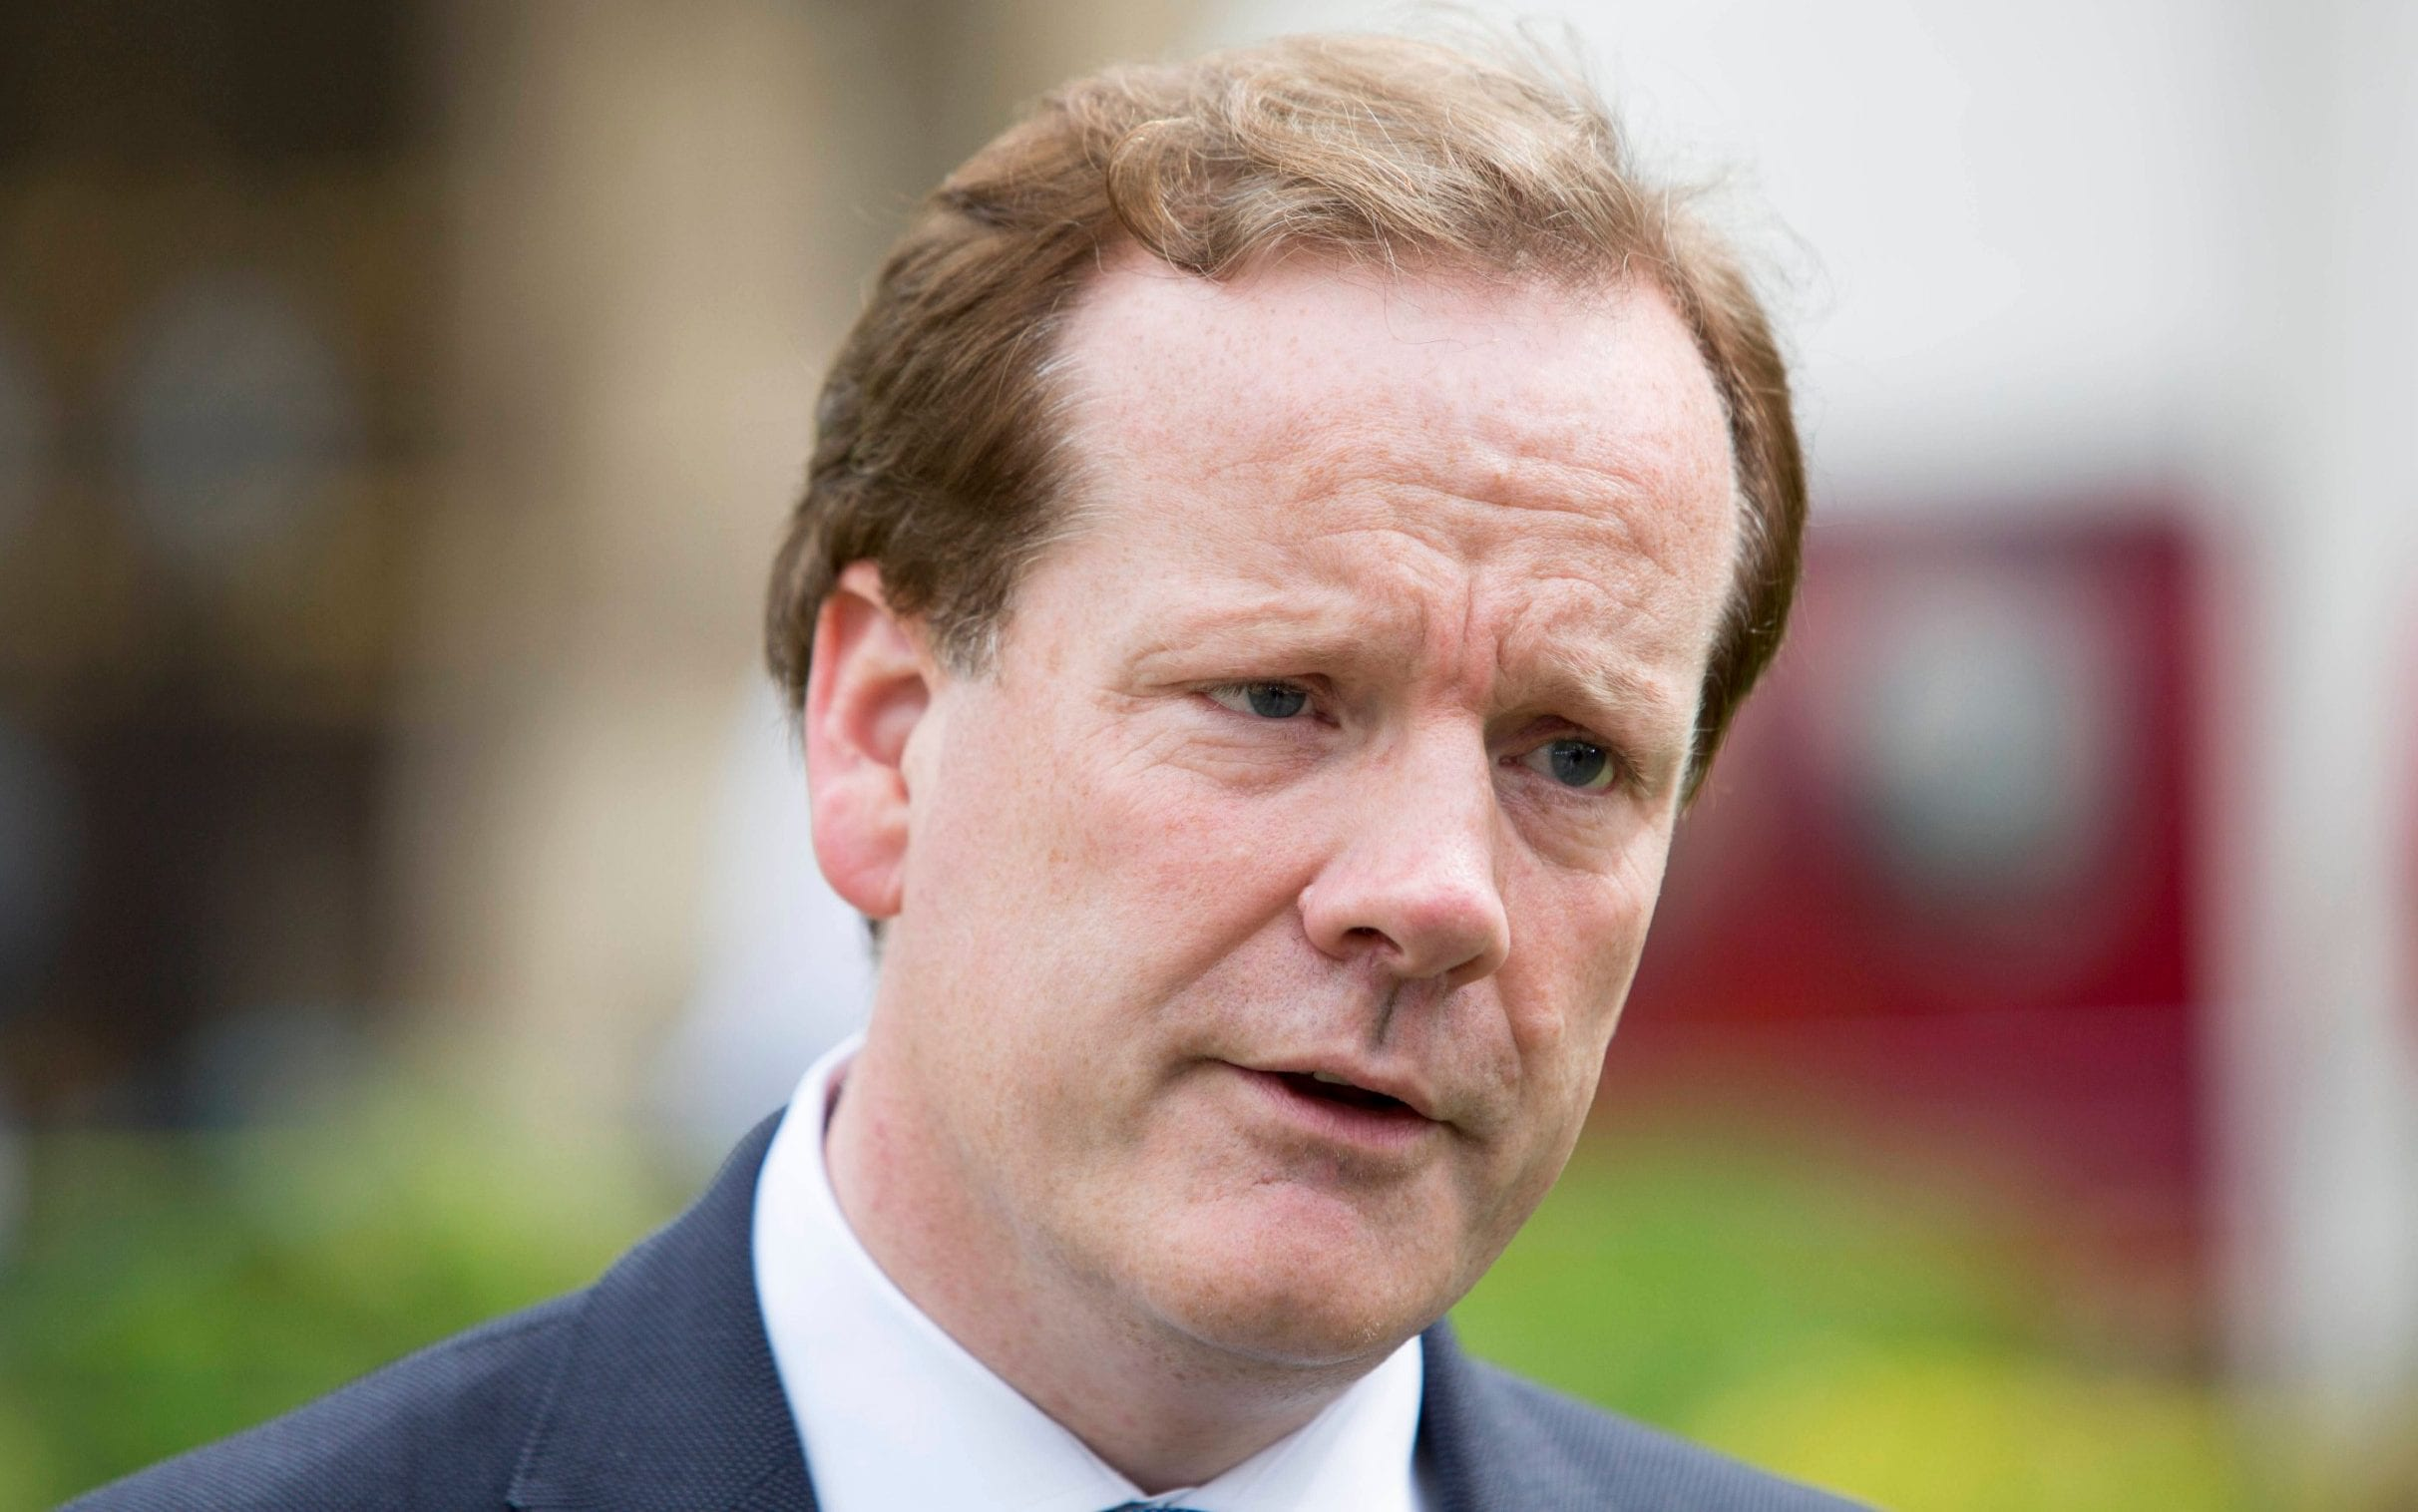 Tory Mp Charlie Elphicke Confident Of Clearing His Name